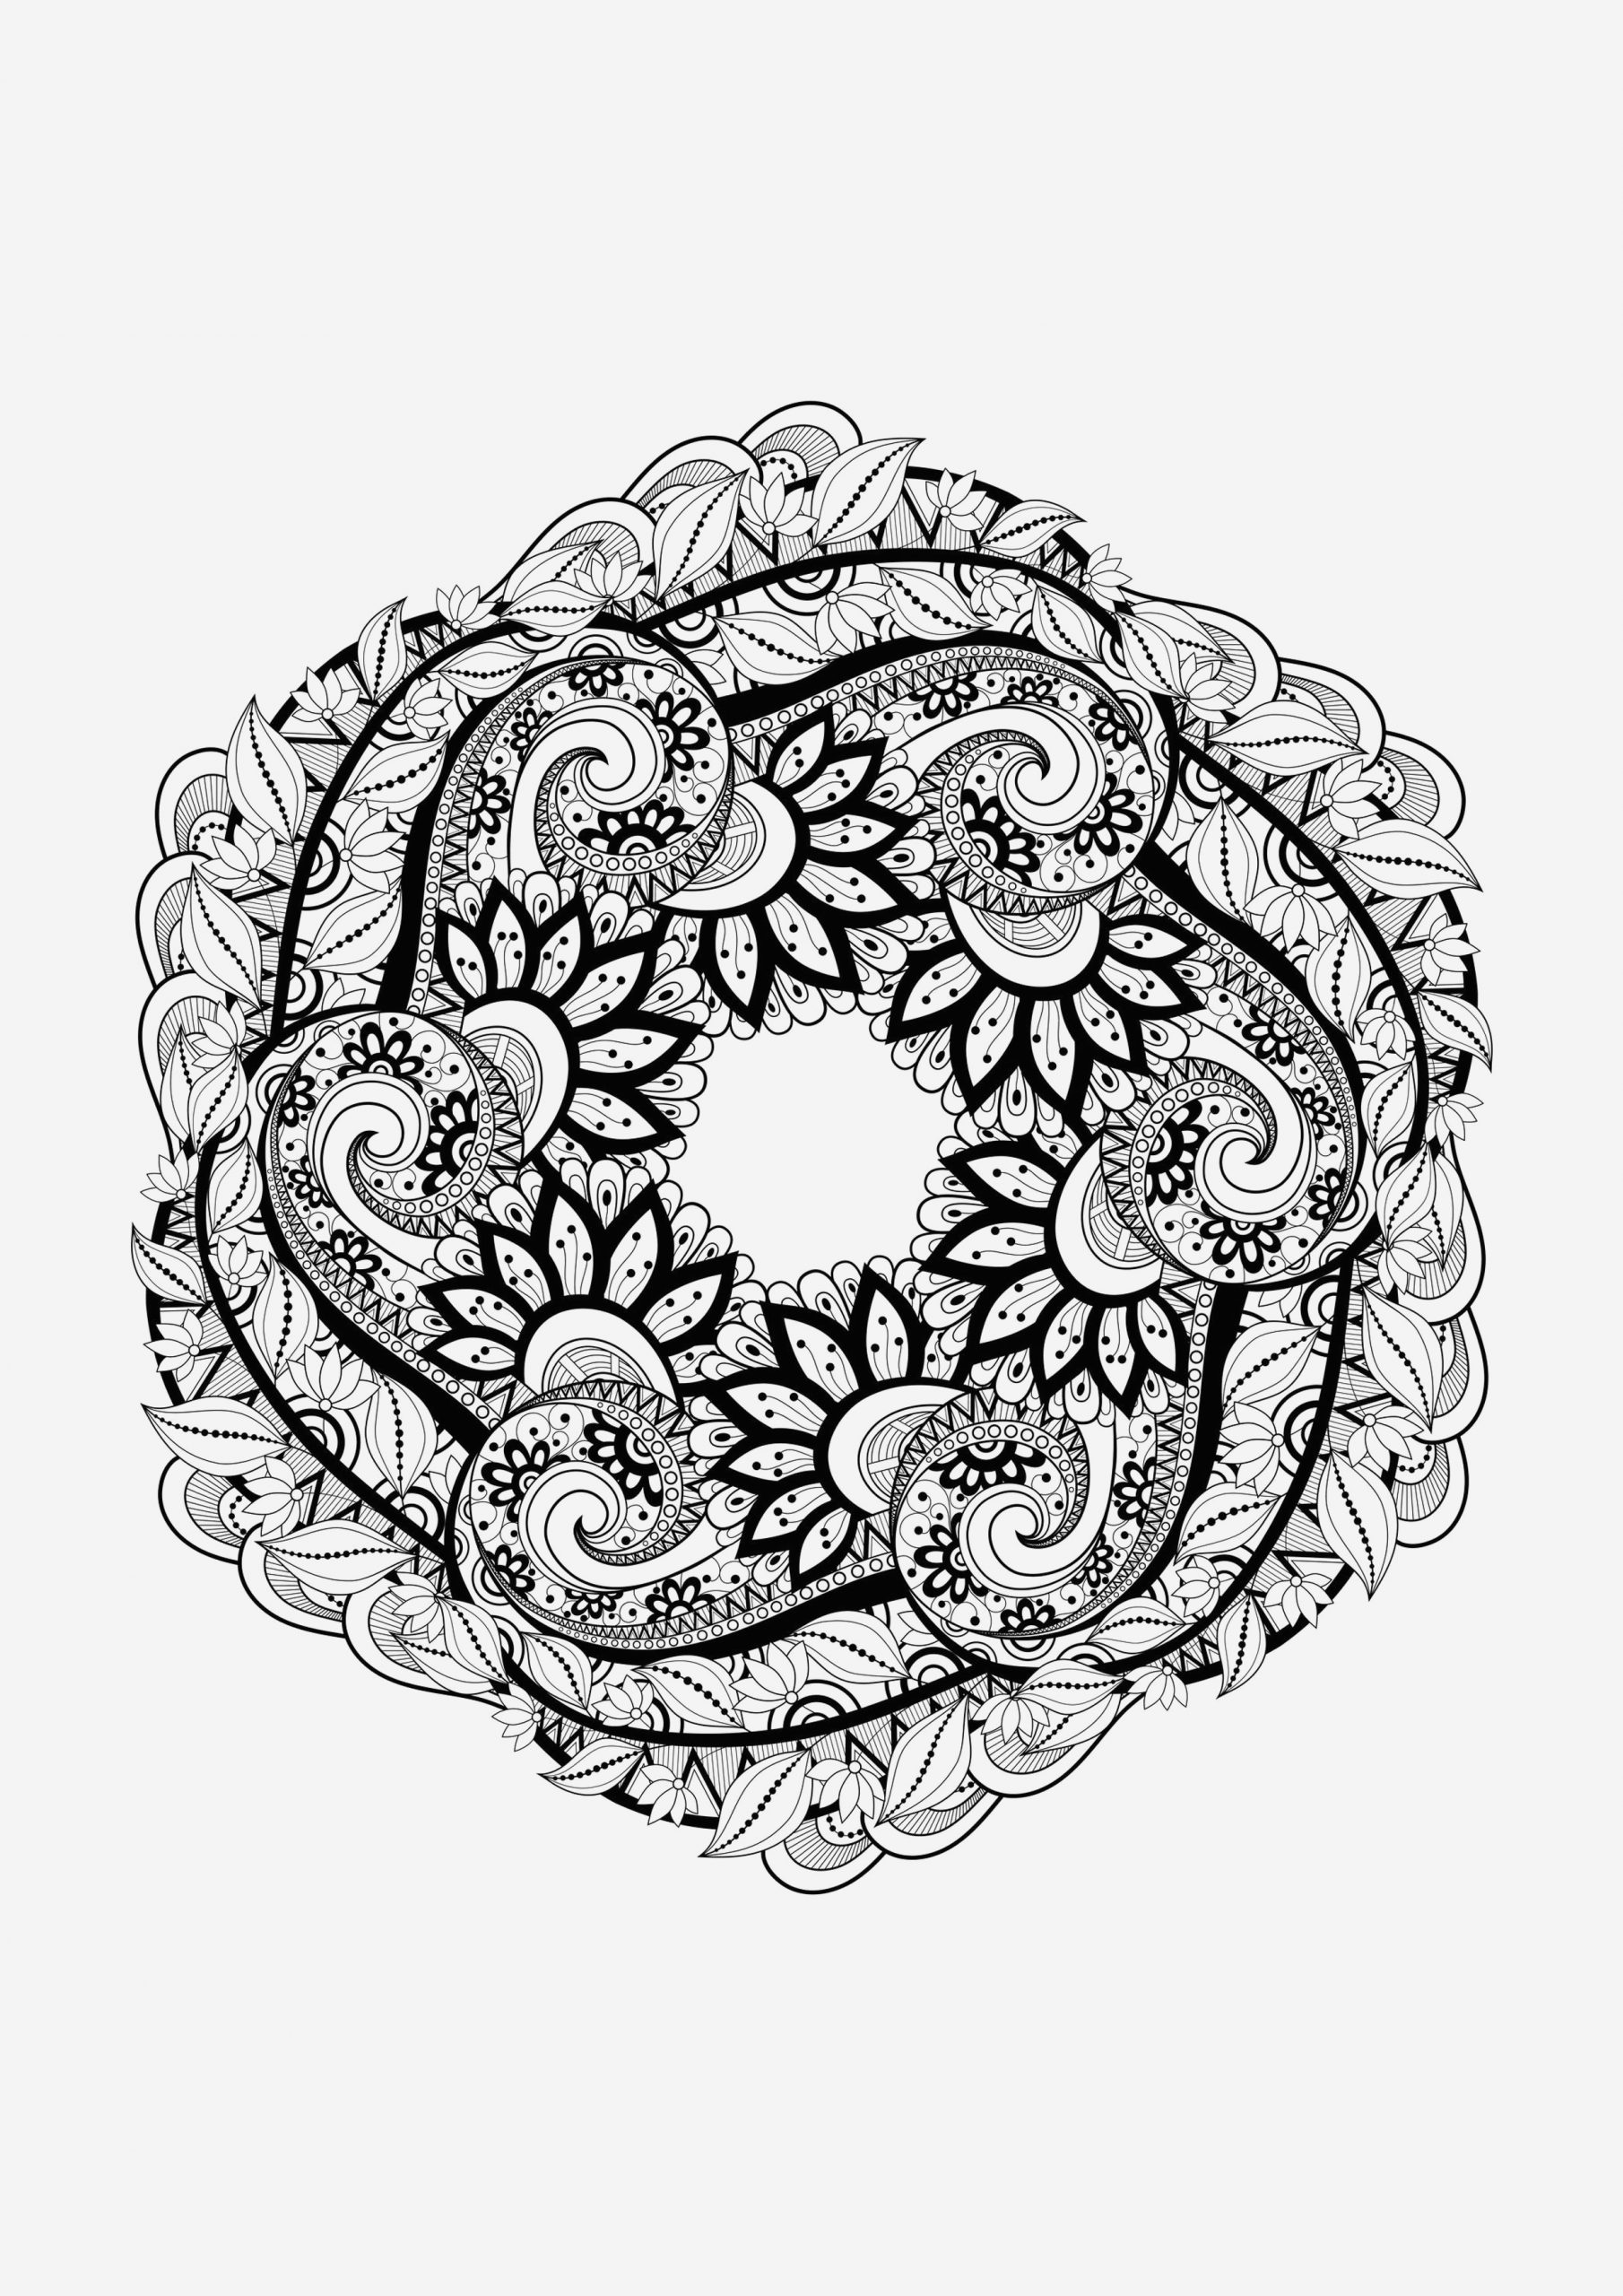 Coloriage Mandala Adulte à Imprimer Awesome Mandala 1 Mandalas Coloriages Difficiles Pour Adultes Of Coloriage Mandala Adulte à Imprimer